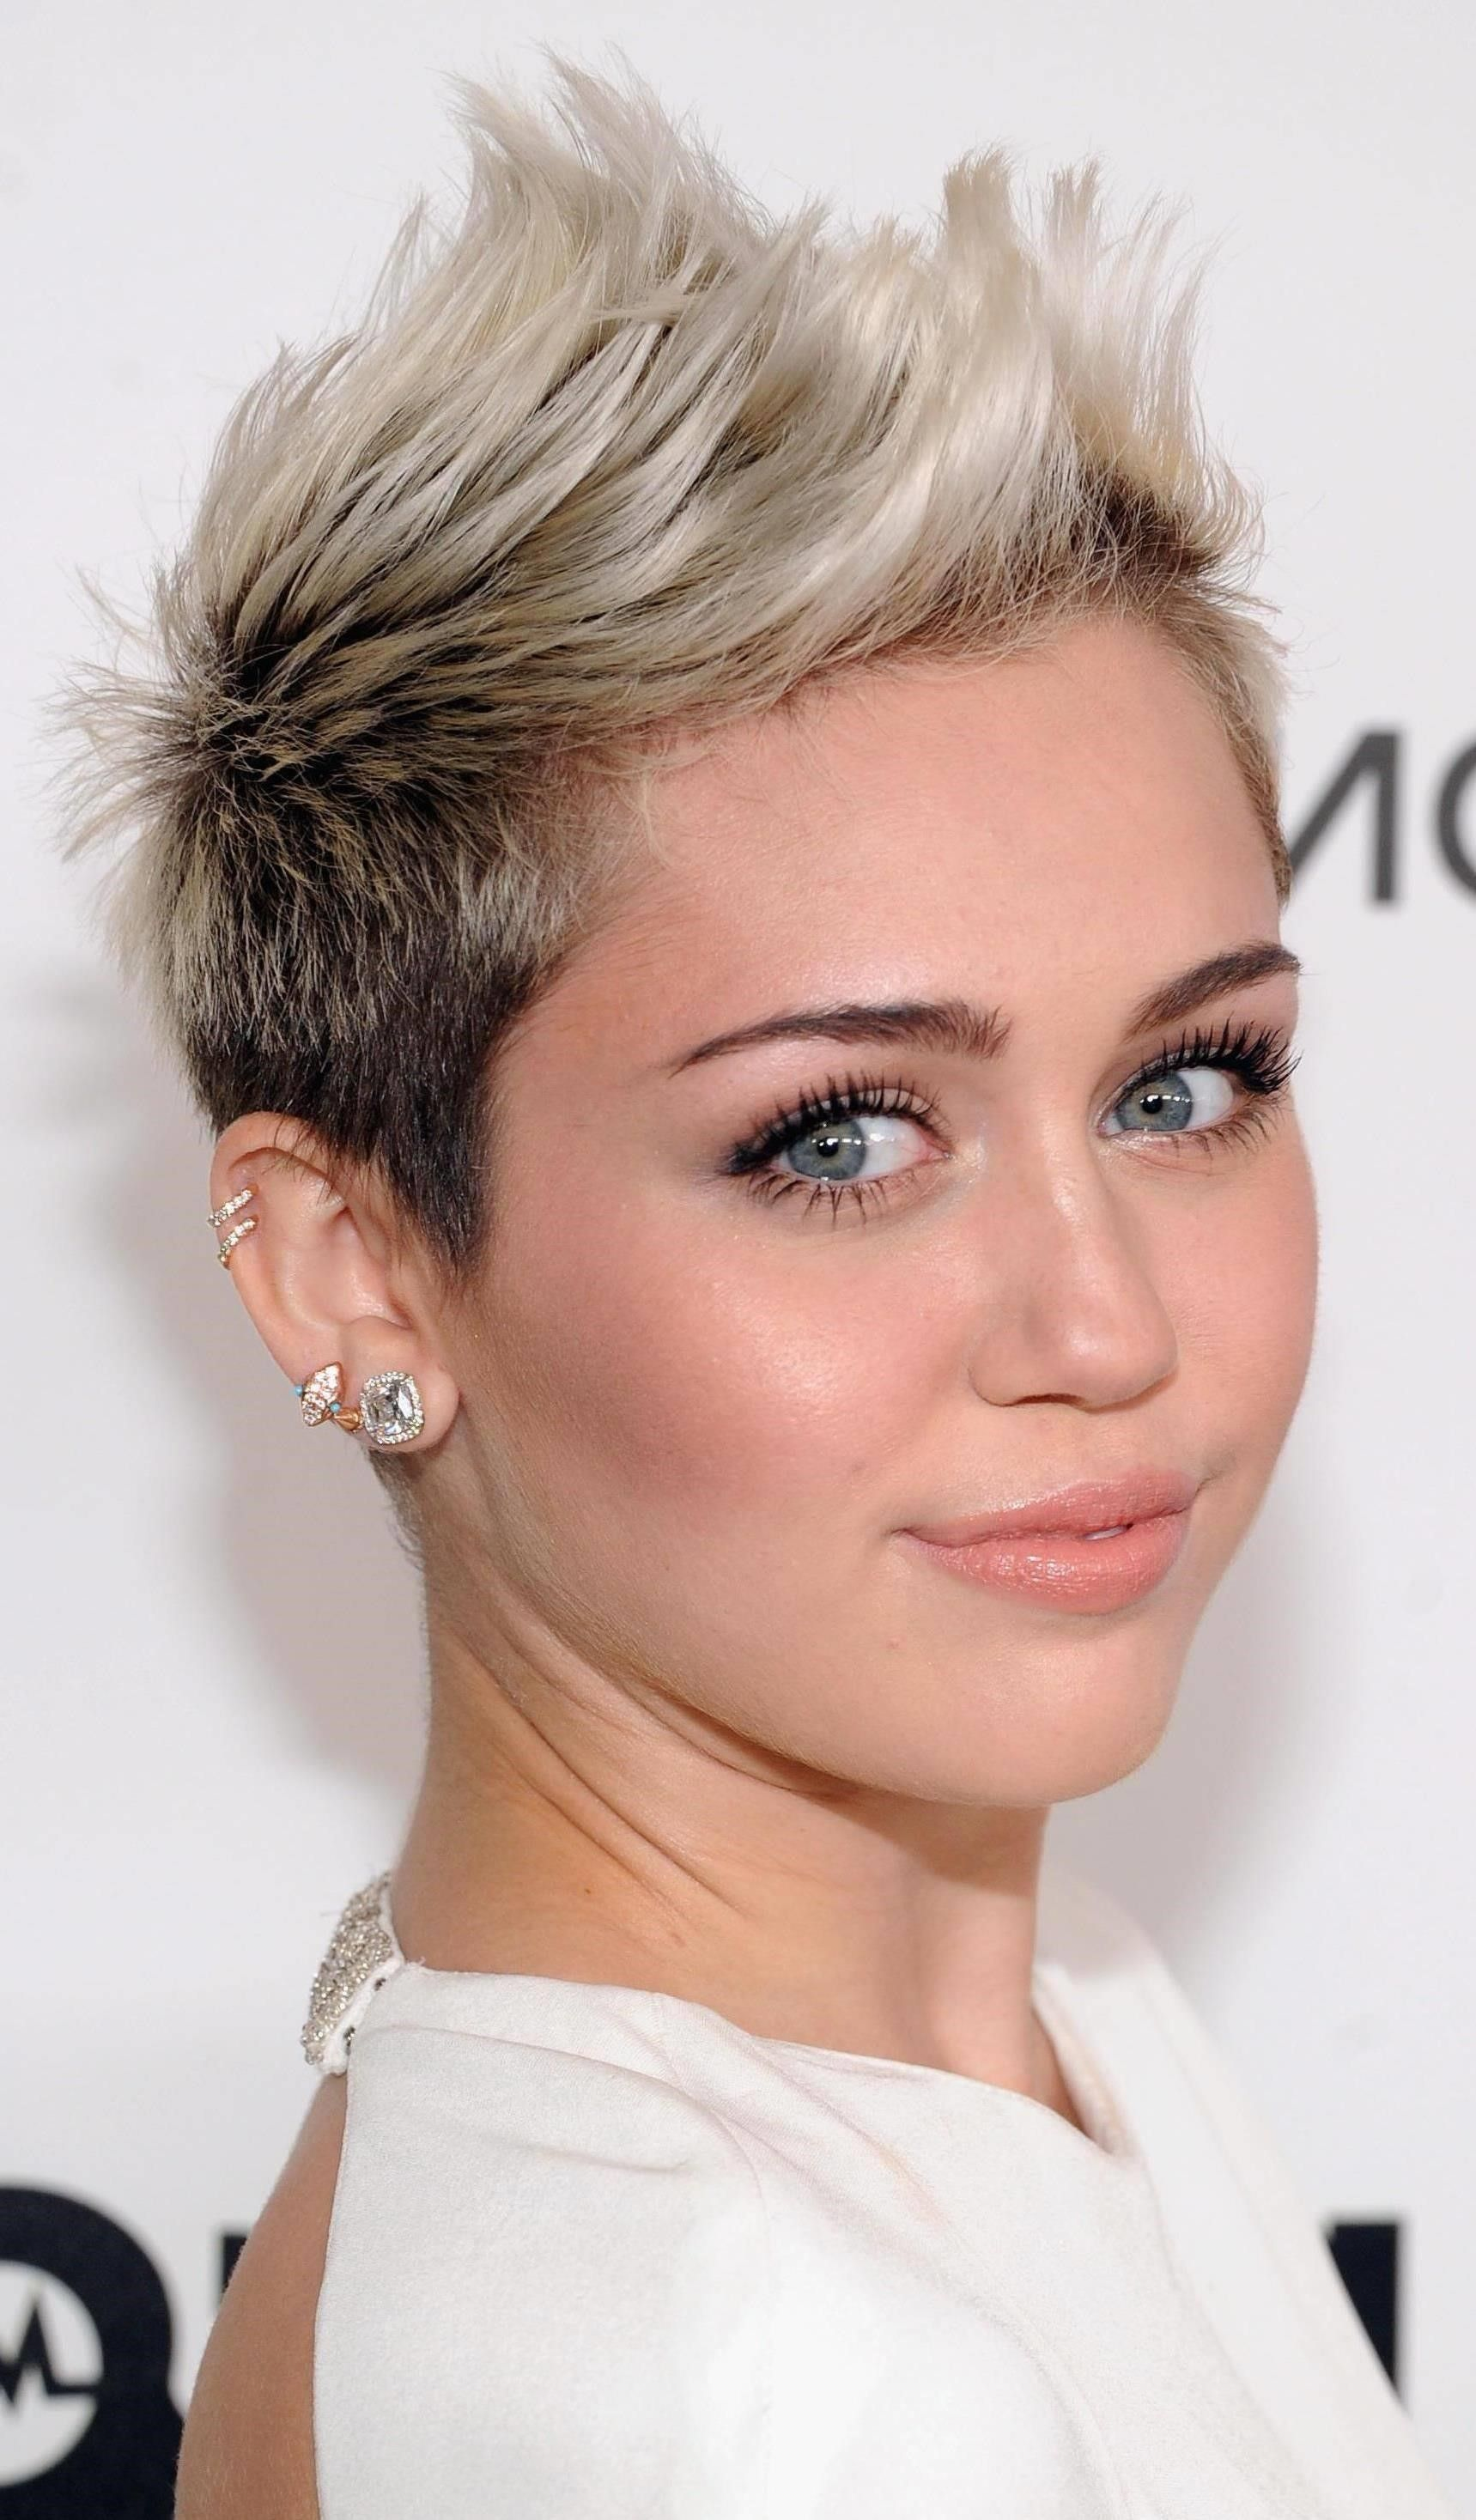 miley cyrus hairstyles | best hairstyles 2015 | hot haircuts